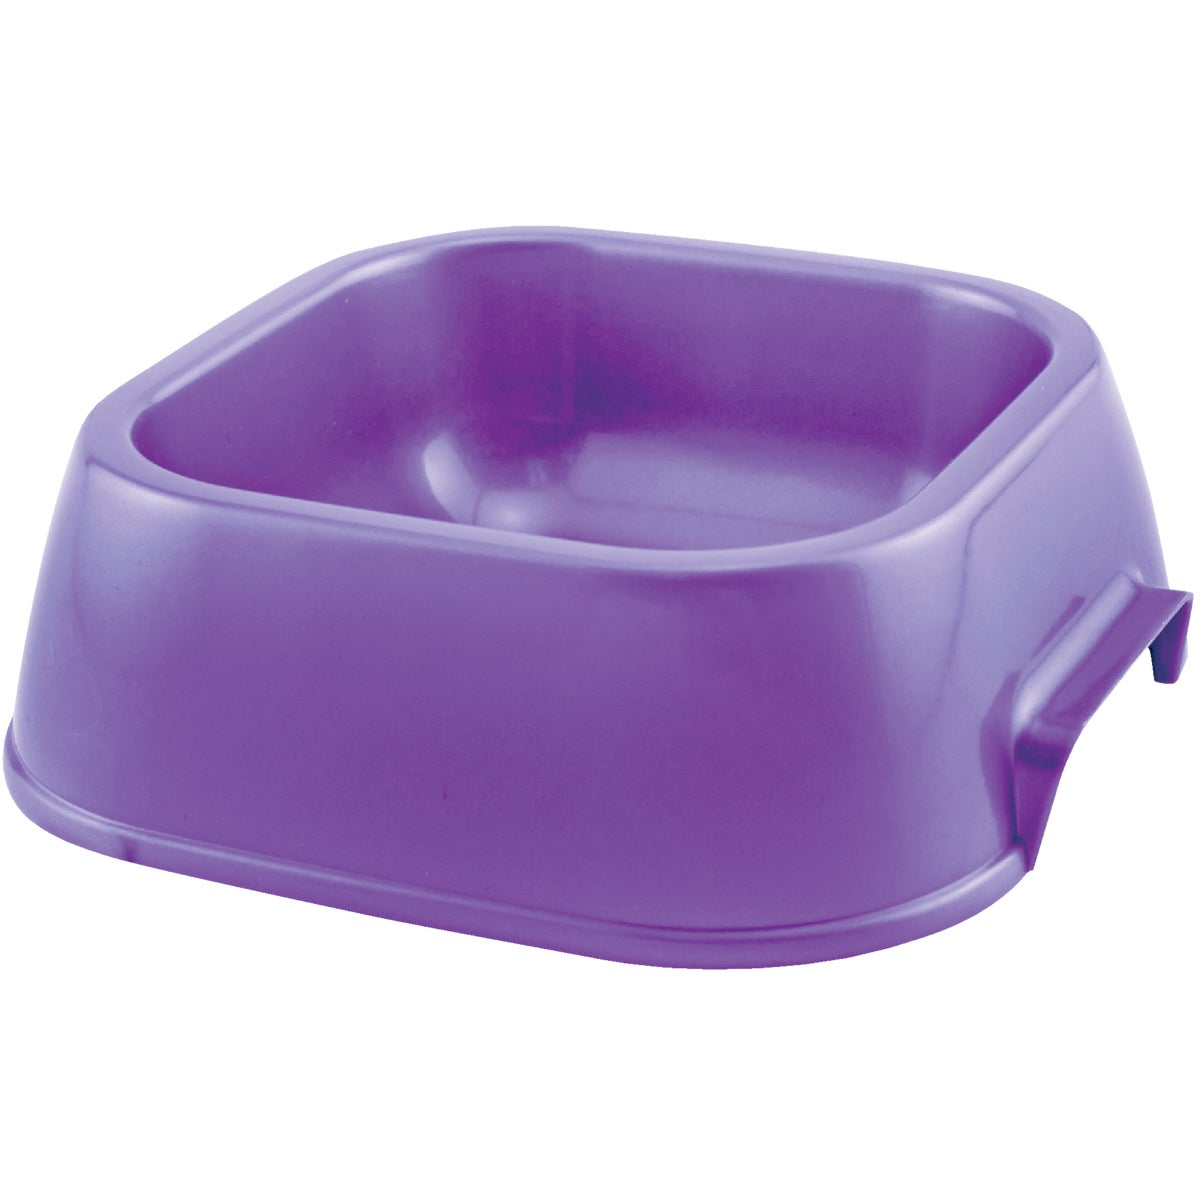 PUPPY AND CAT DISH - 01116 by Westminster Pet